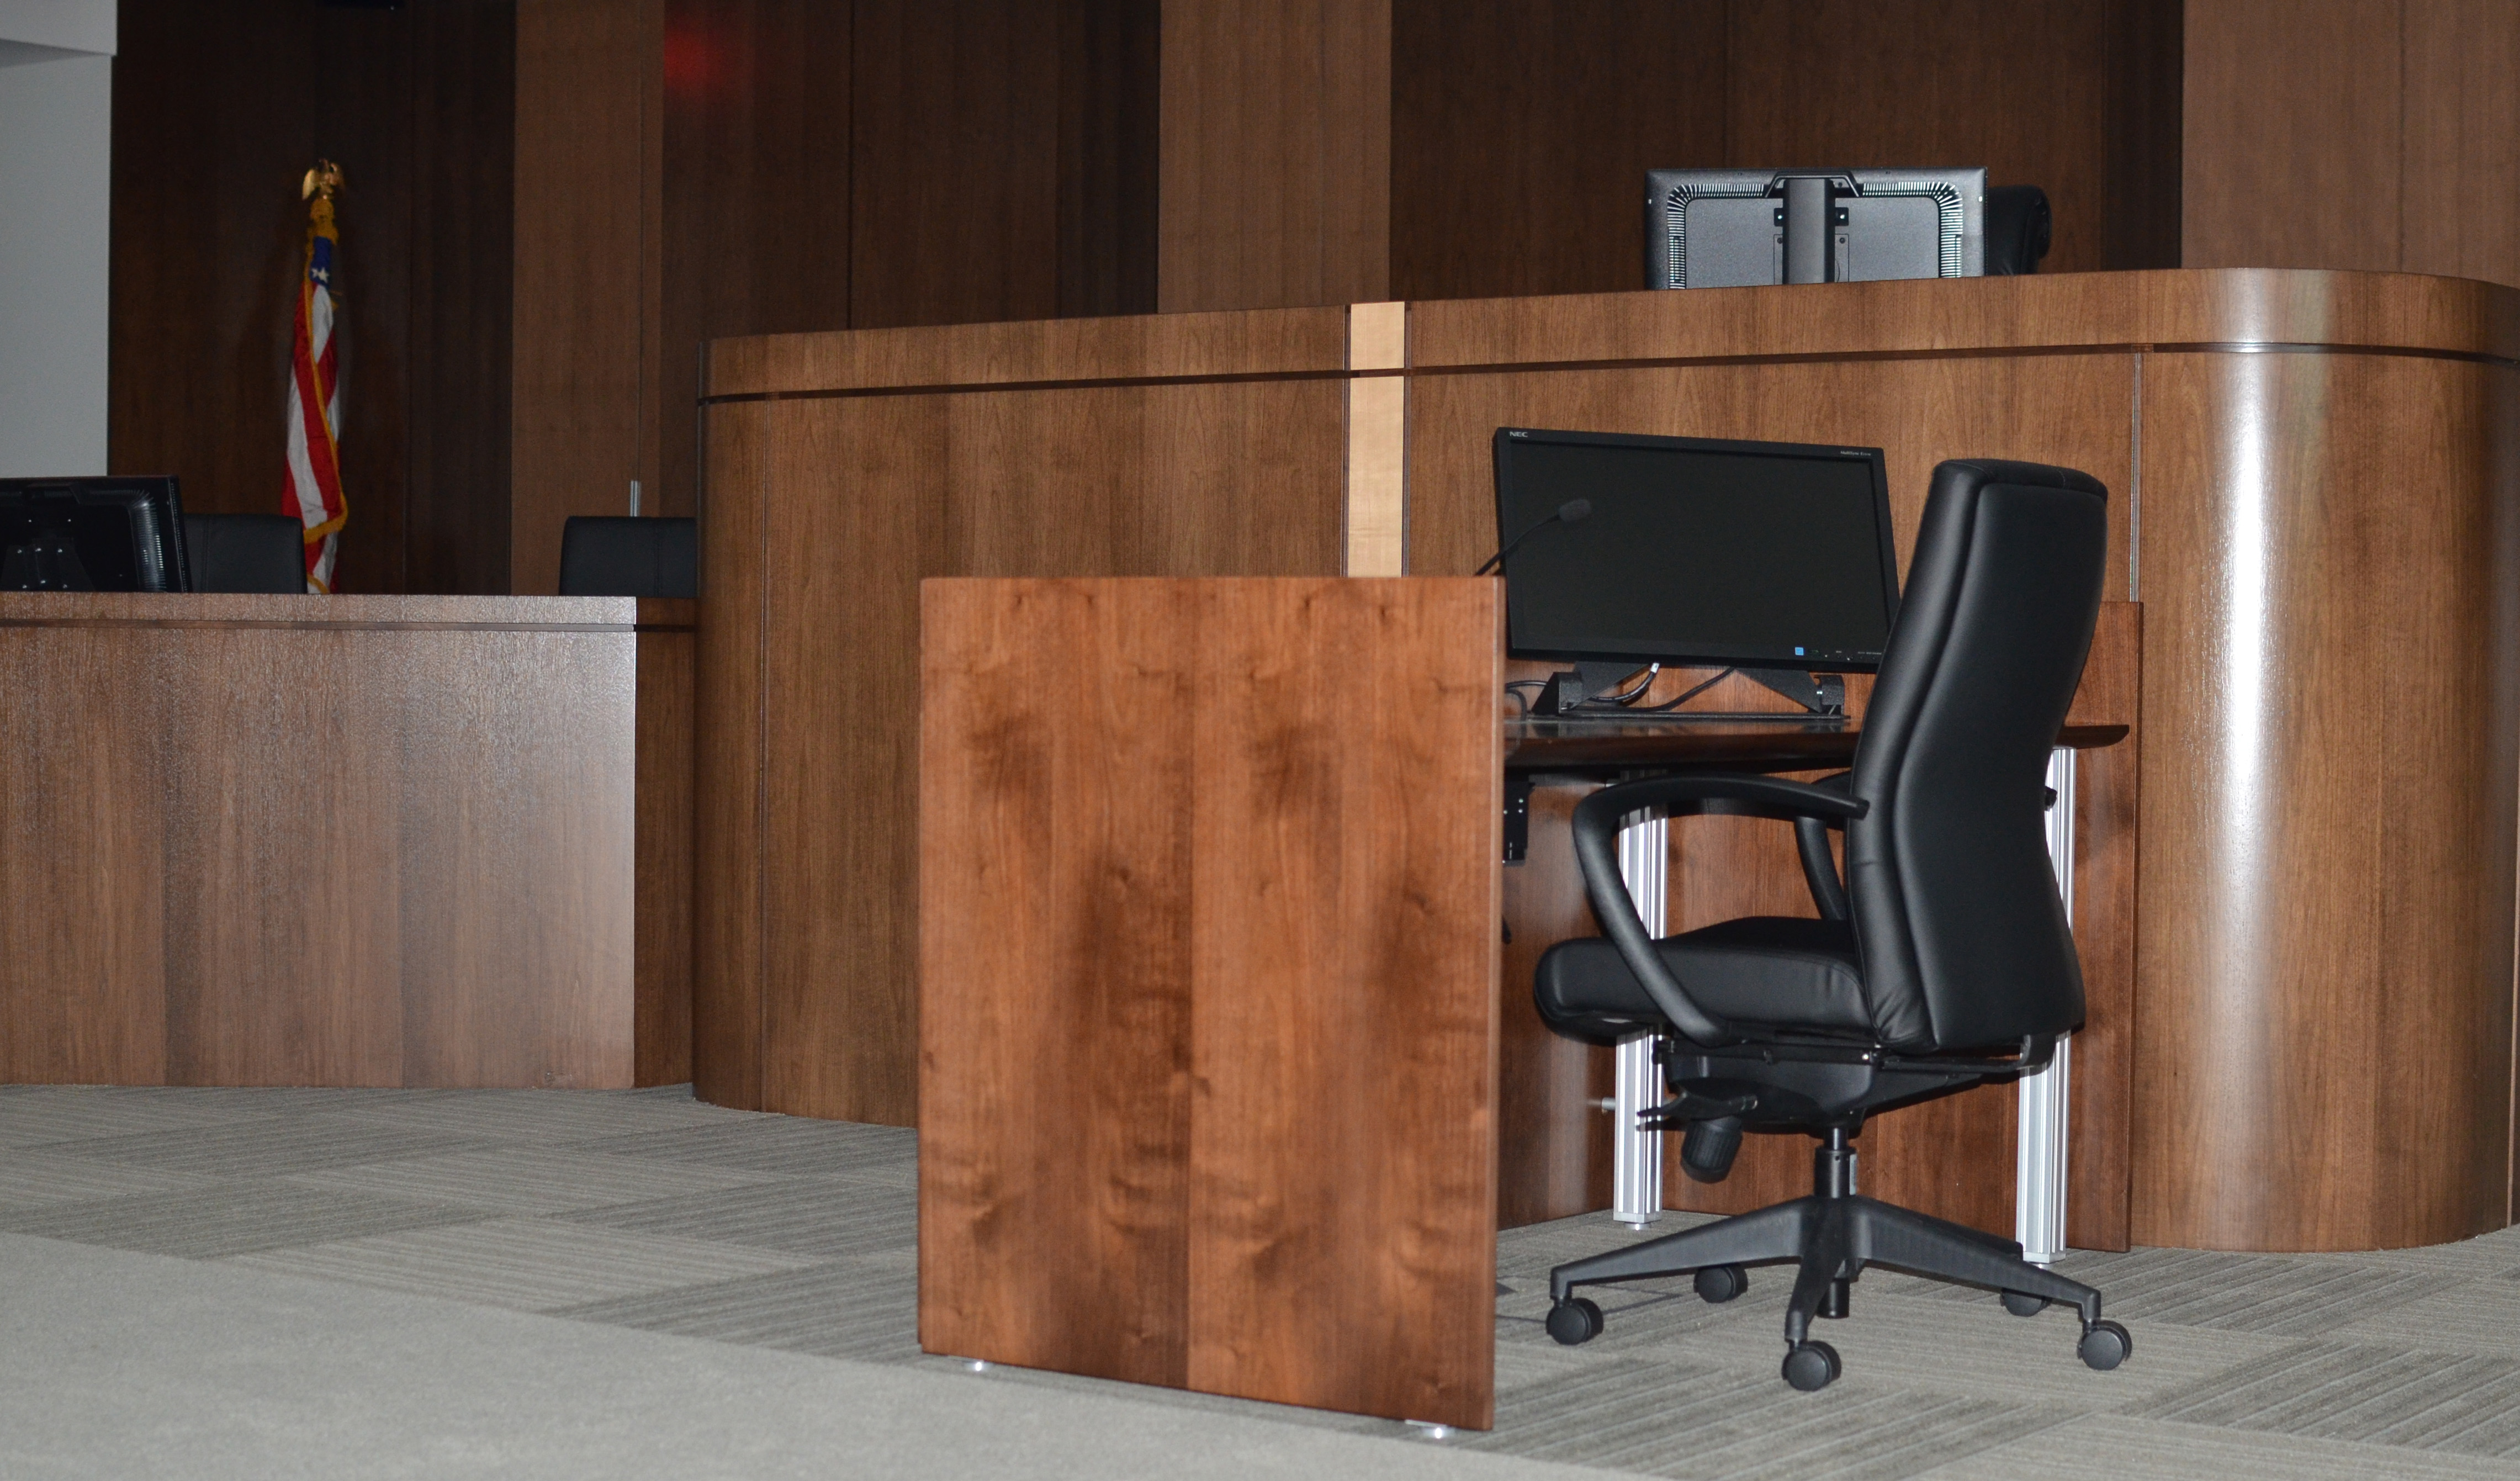 The judge's bench, the clerk's desk, and the court reporter's station -- all equipped with computer screens and audio connections to allow easier access to complex information often crucial in intellectual property infringement trials.